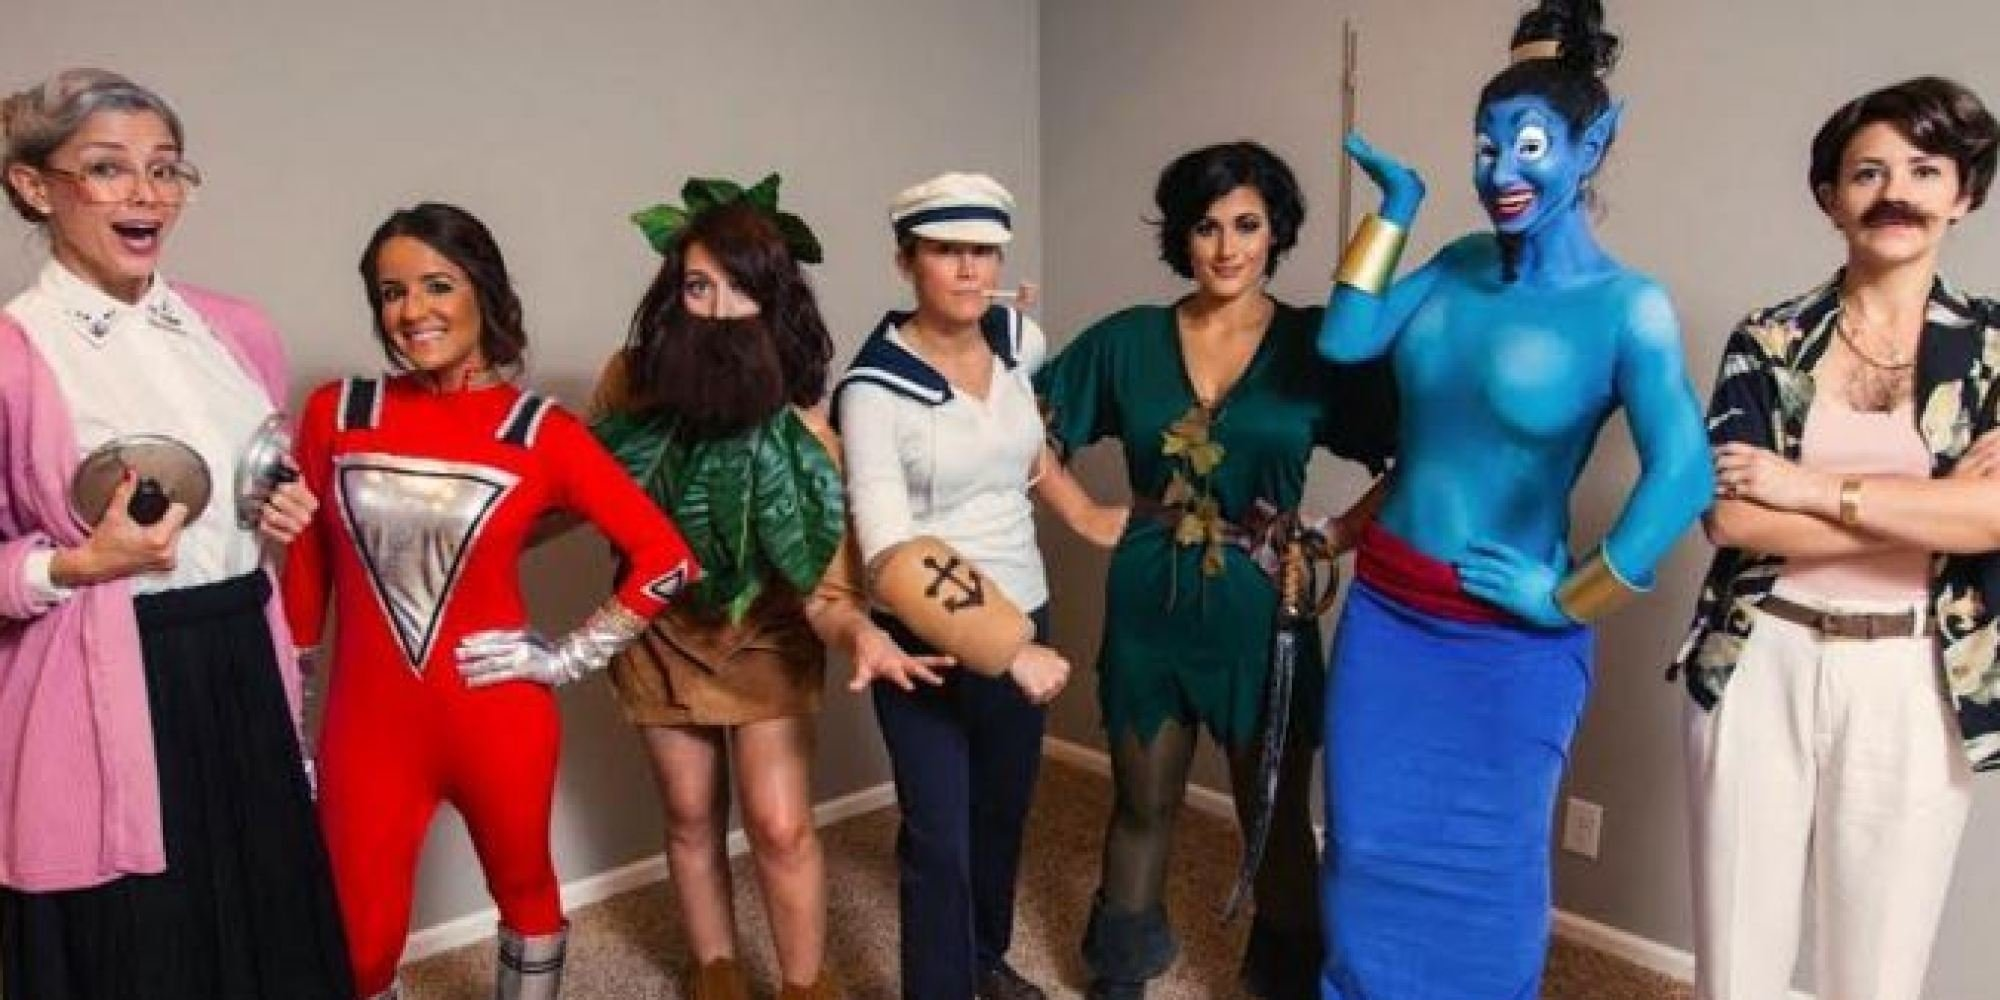 10 Cute Funny Group Halloween Costume Ideas group halloween costume ideas 7 women dress up as one actor every 2021